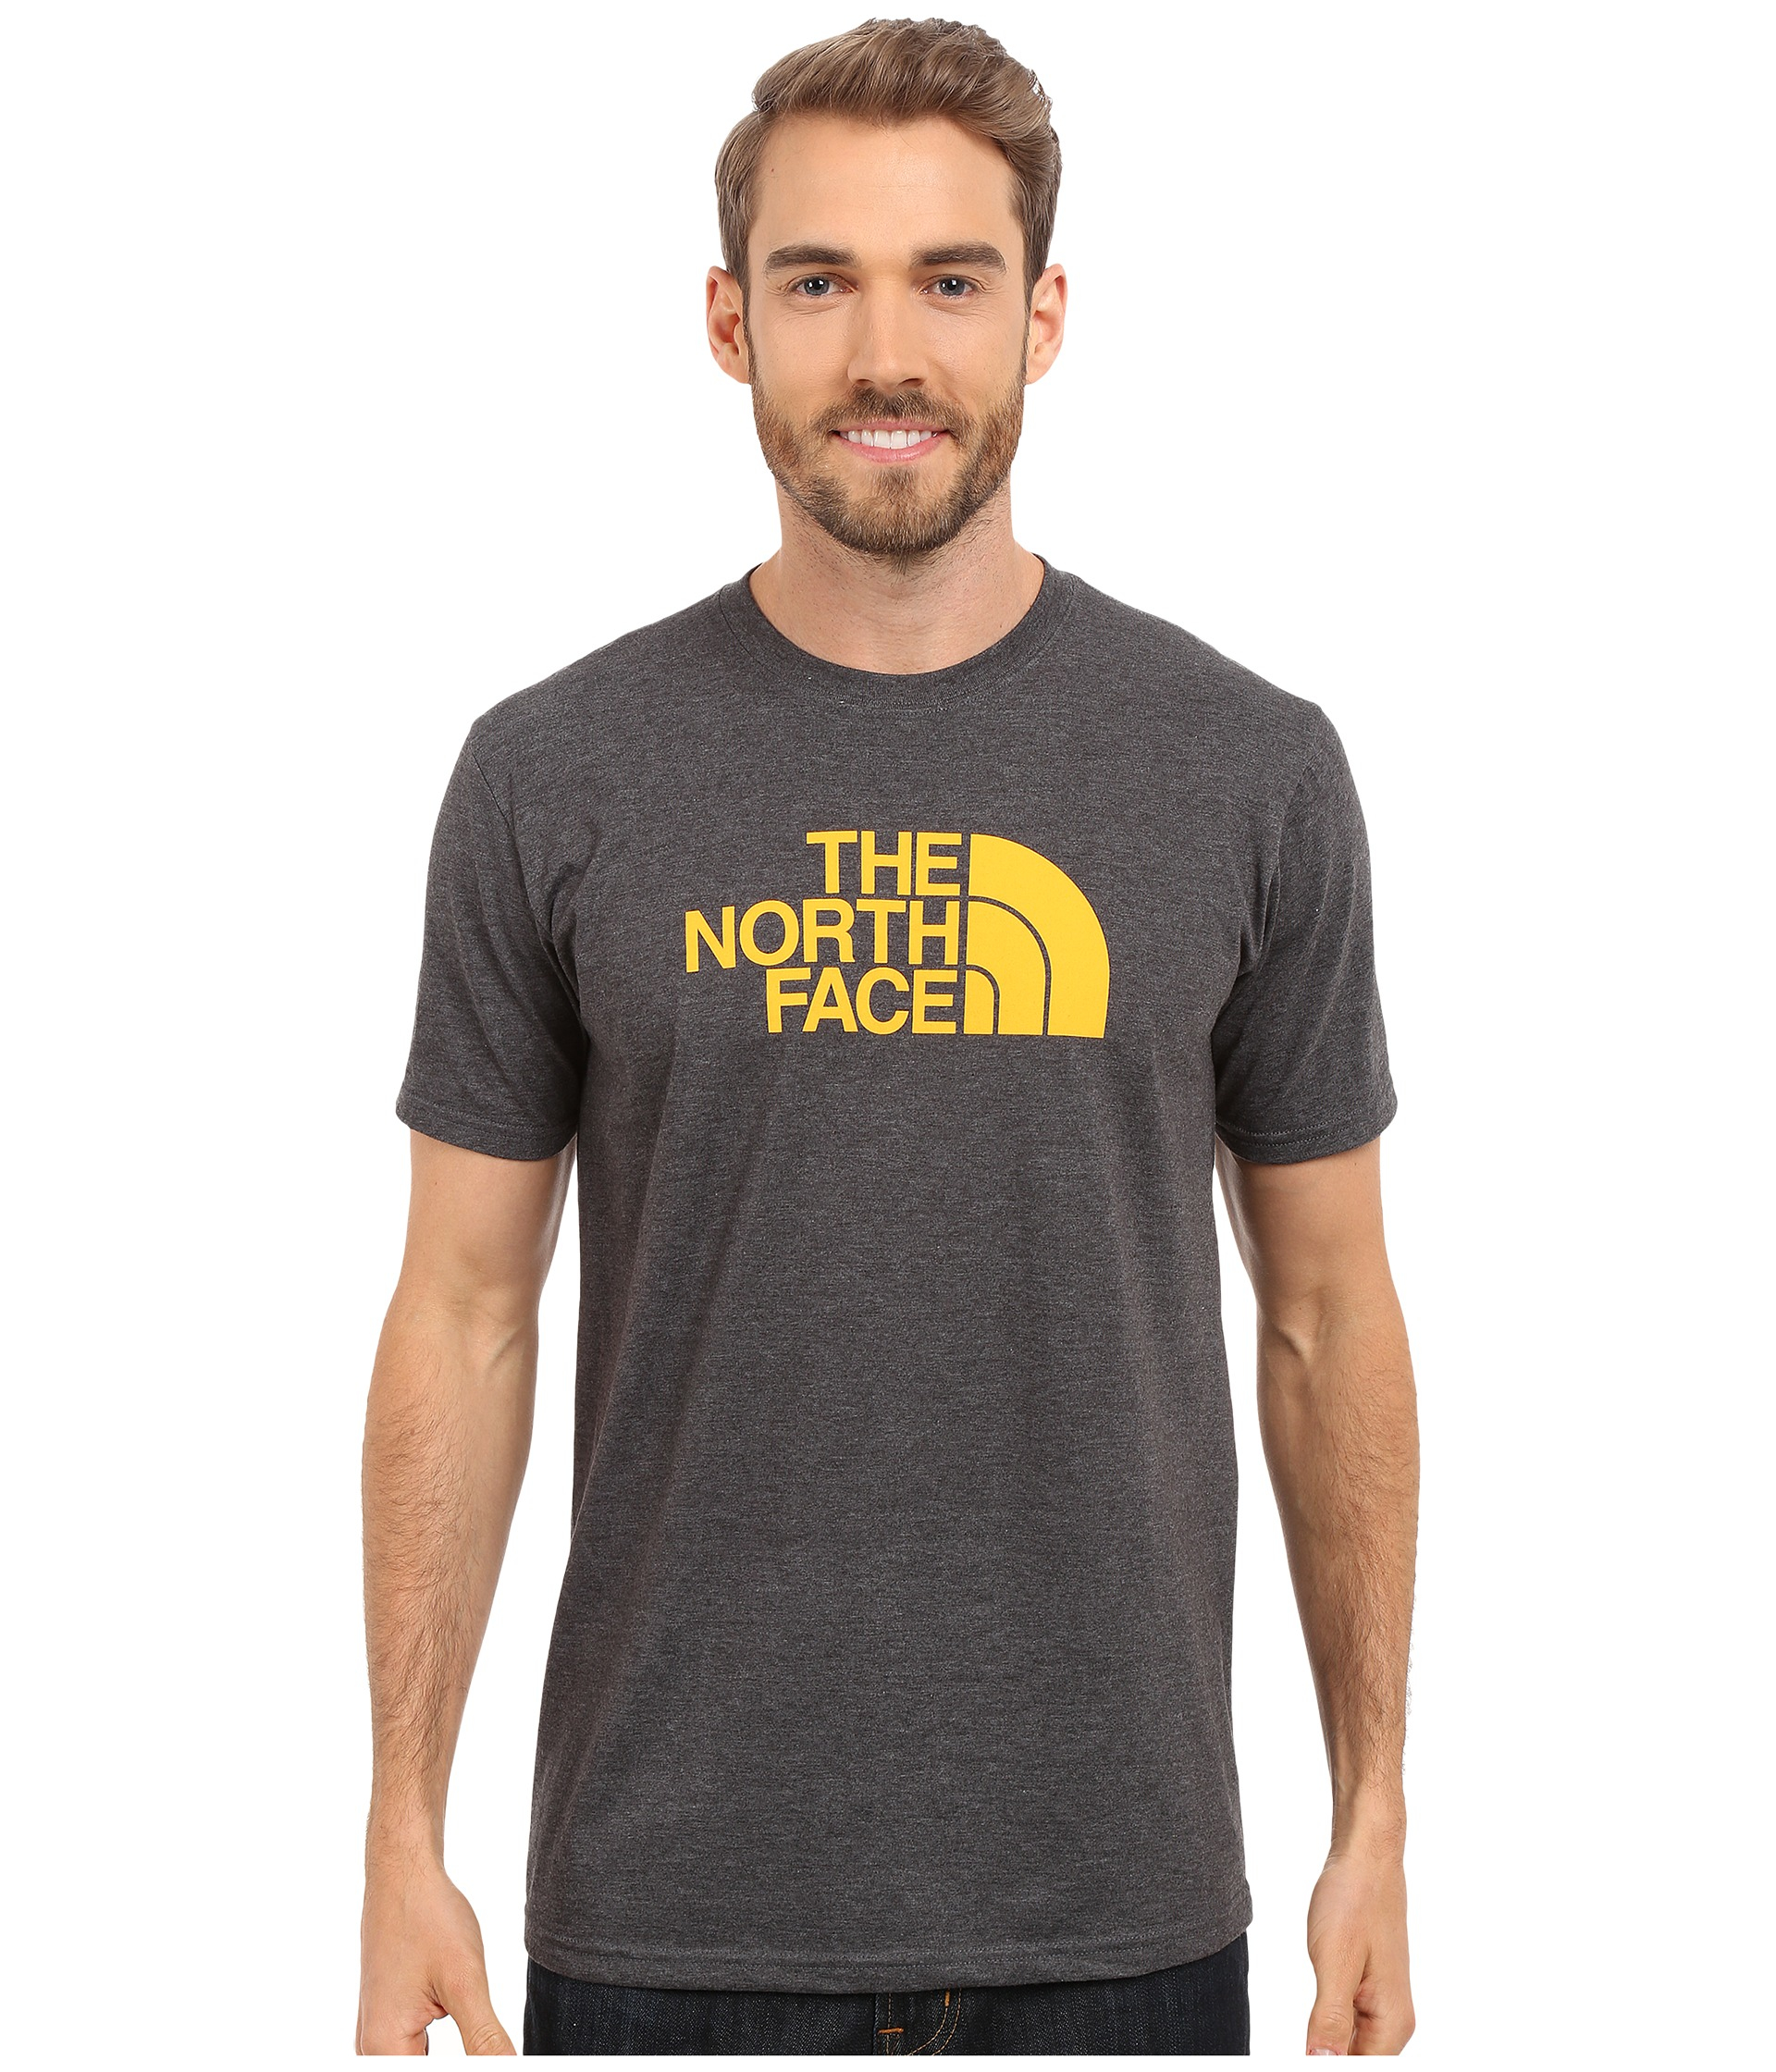 55e058d6bd07 Lyst - The North Face Short Sleeve Half Dome Tee in Gray for Men